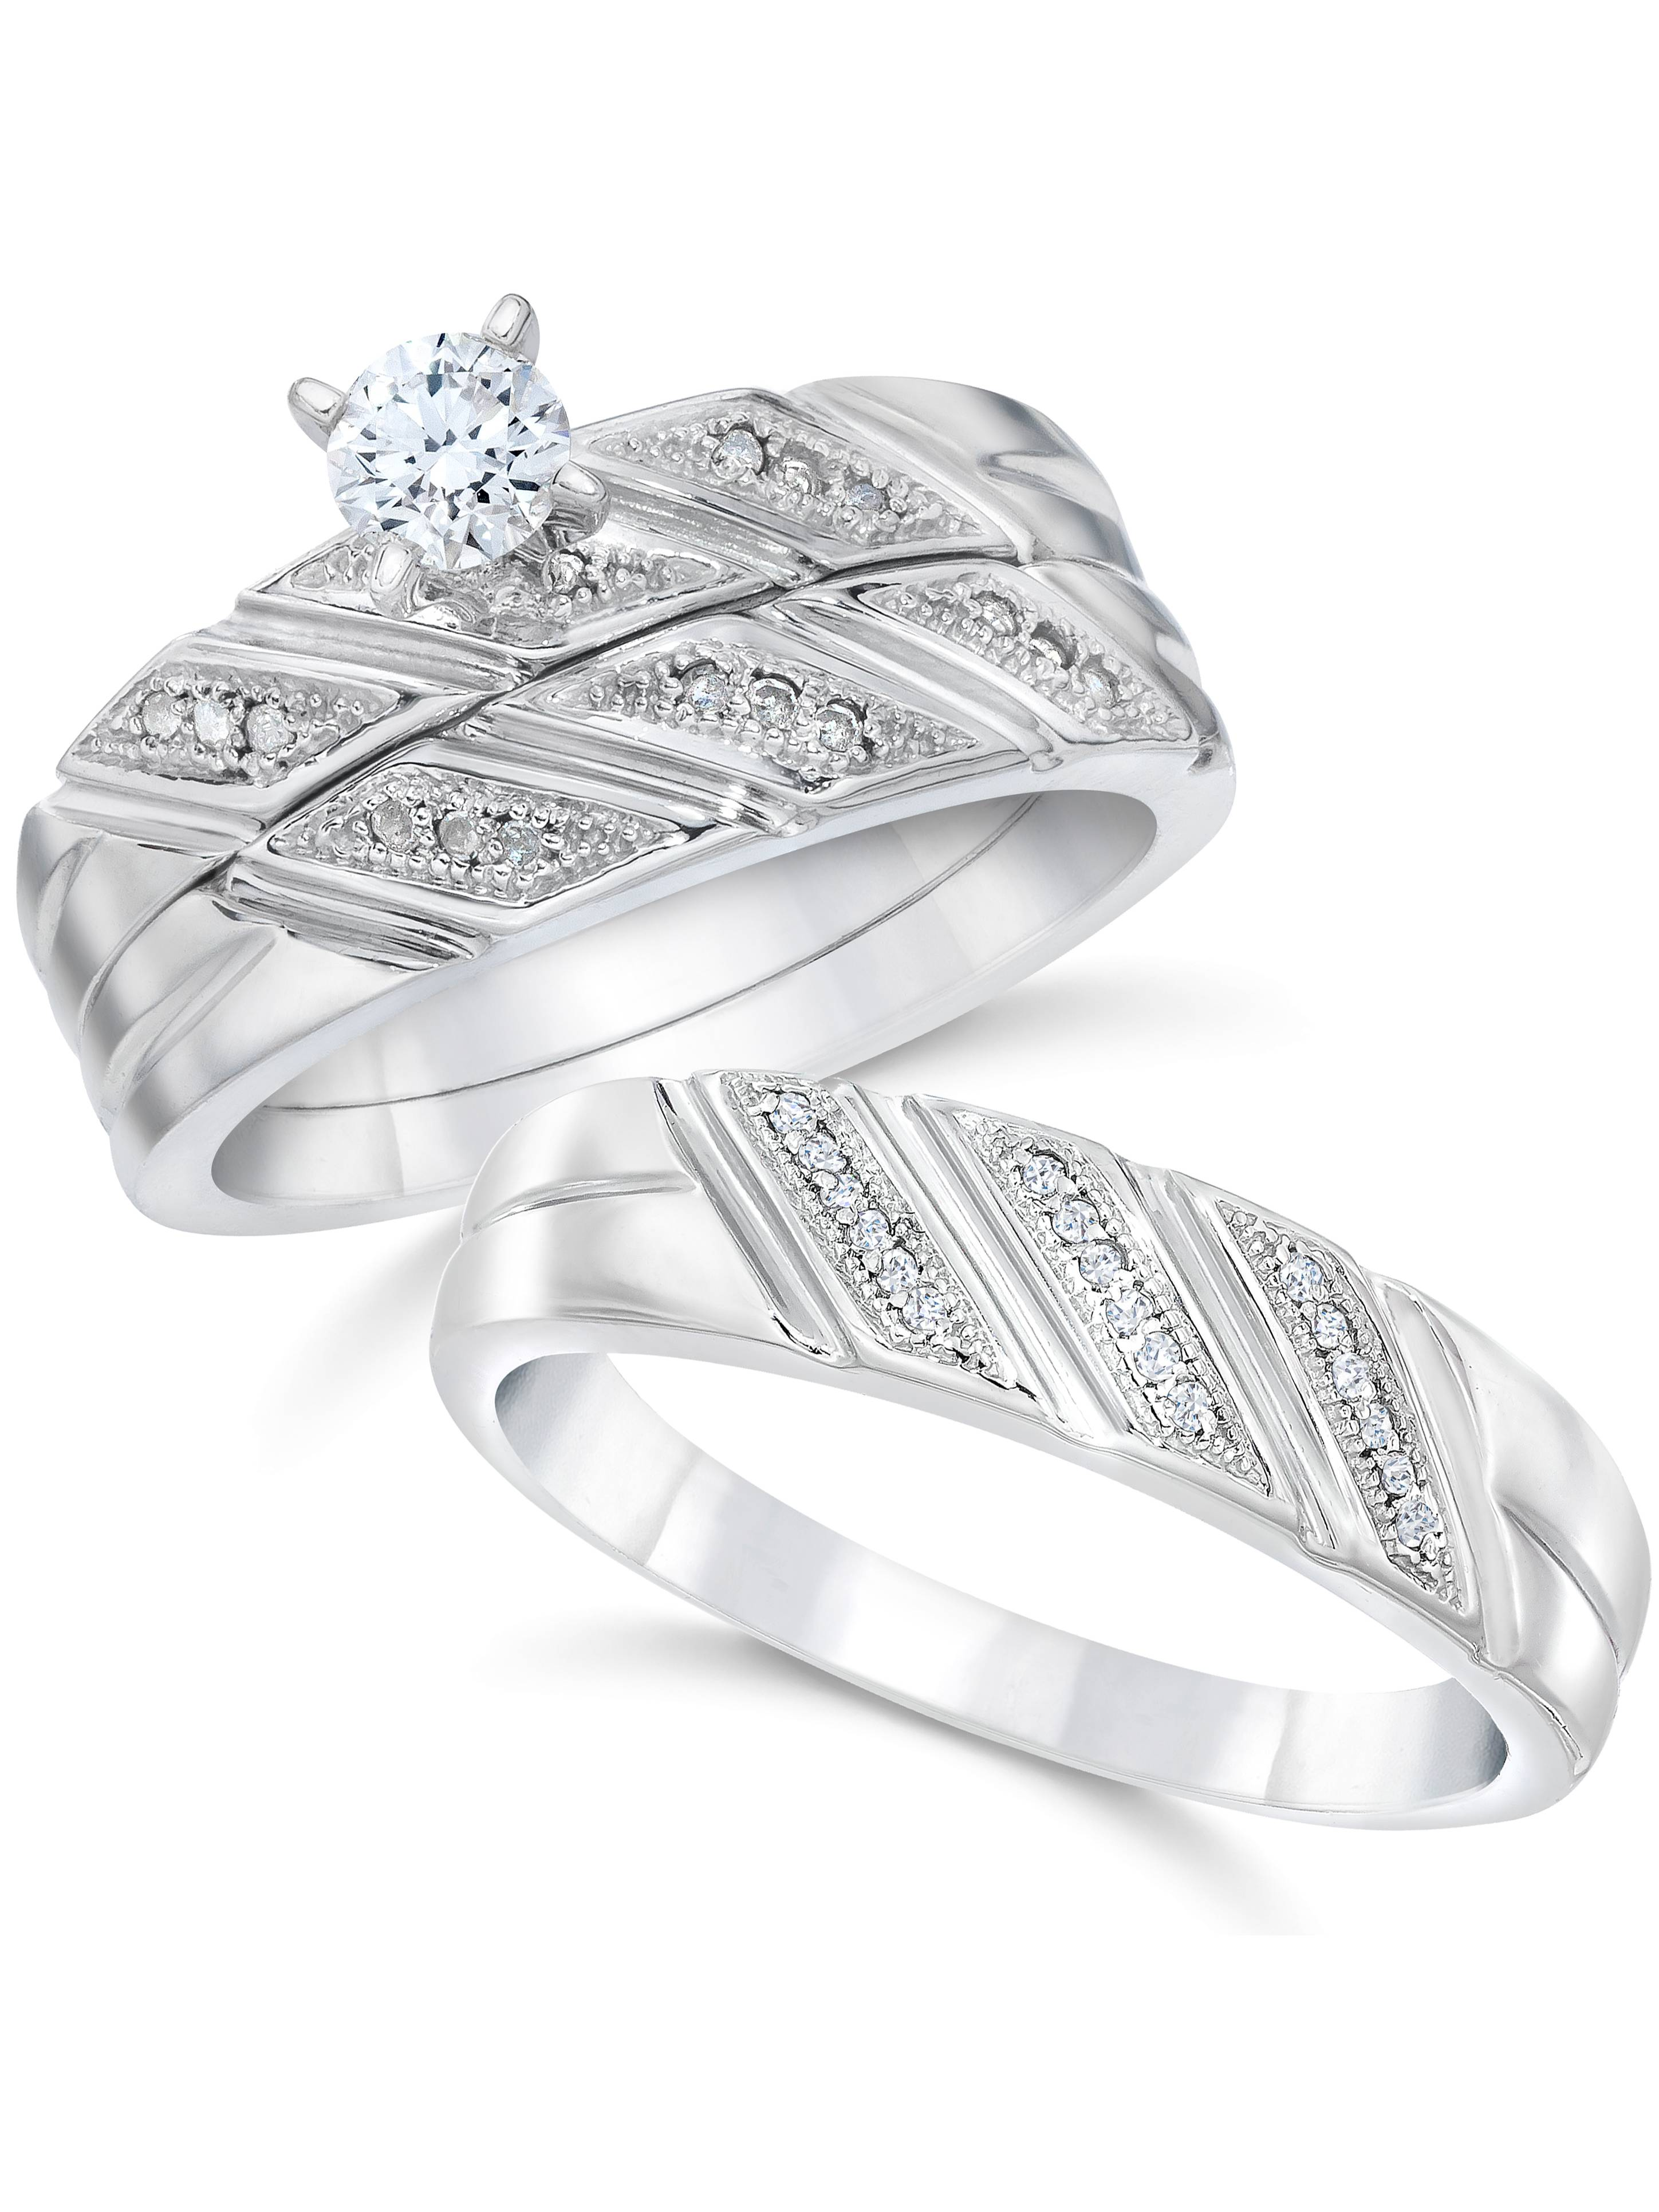 1/3ct His Hers Diamond Trio Engagement Matching Mens Wedding Ring Set White Gold